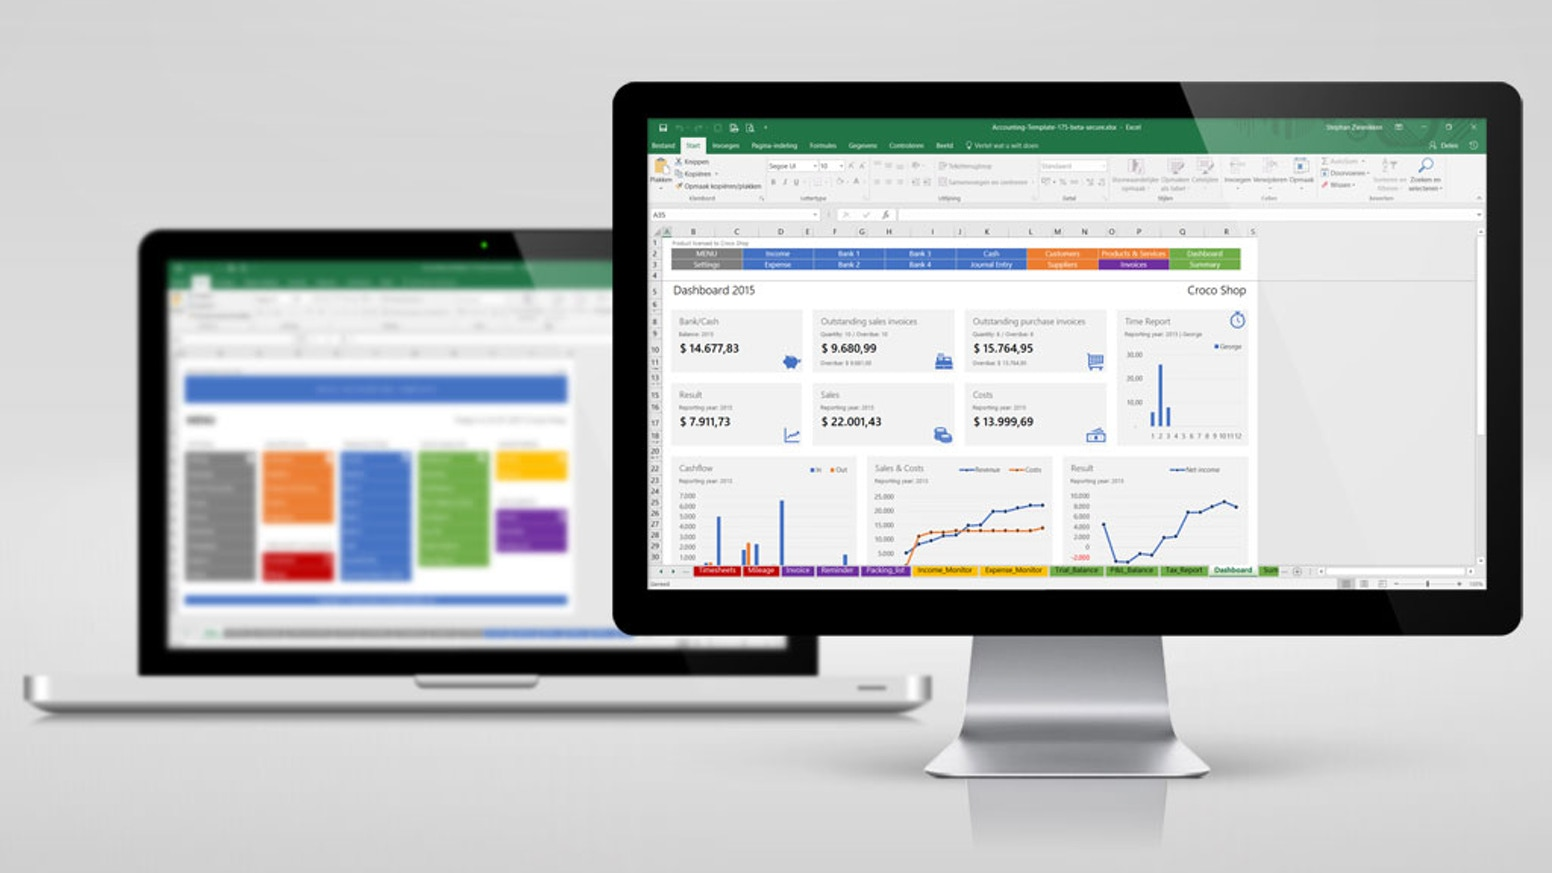 Excel accounting template by stephan zwanikken kickstarter the all in one accounting solution in excel for small business owners cheaphphosting